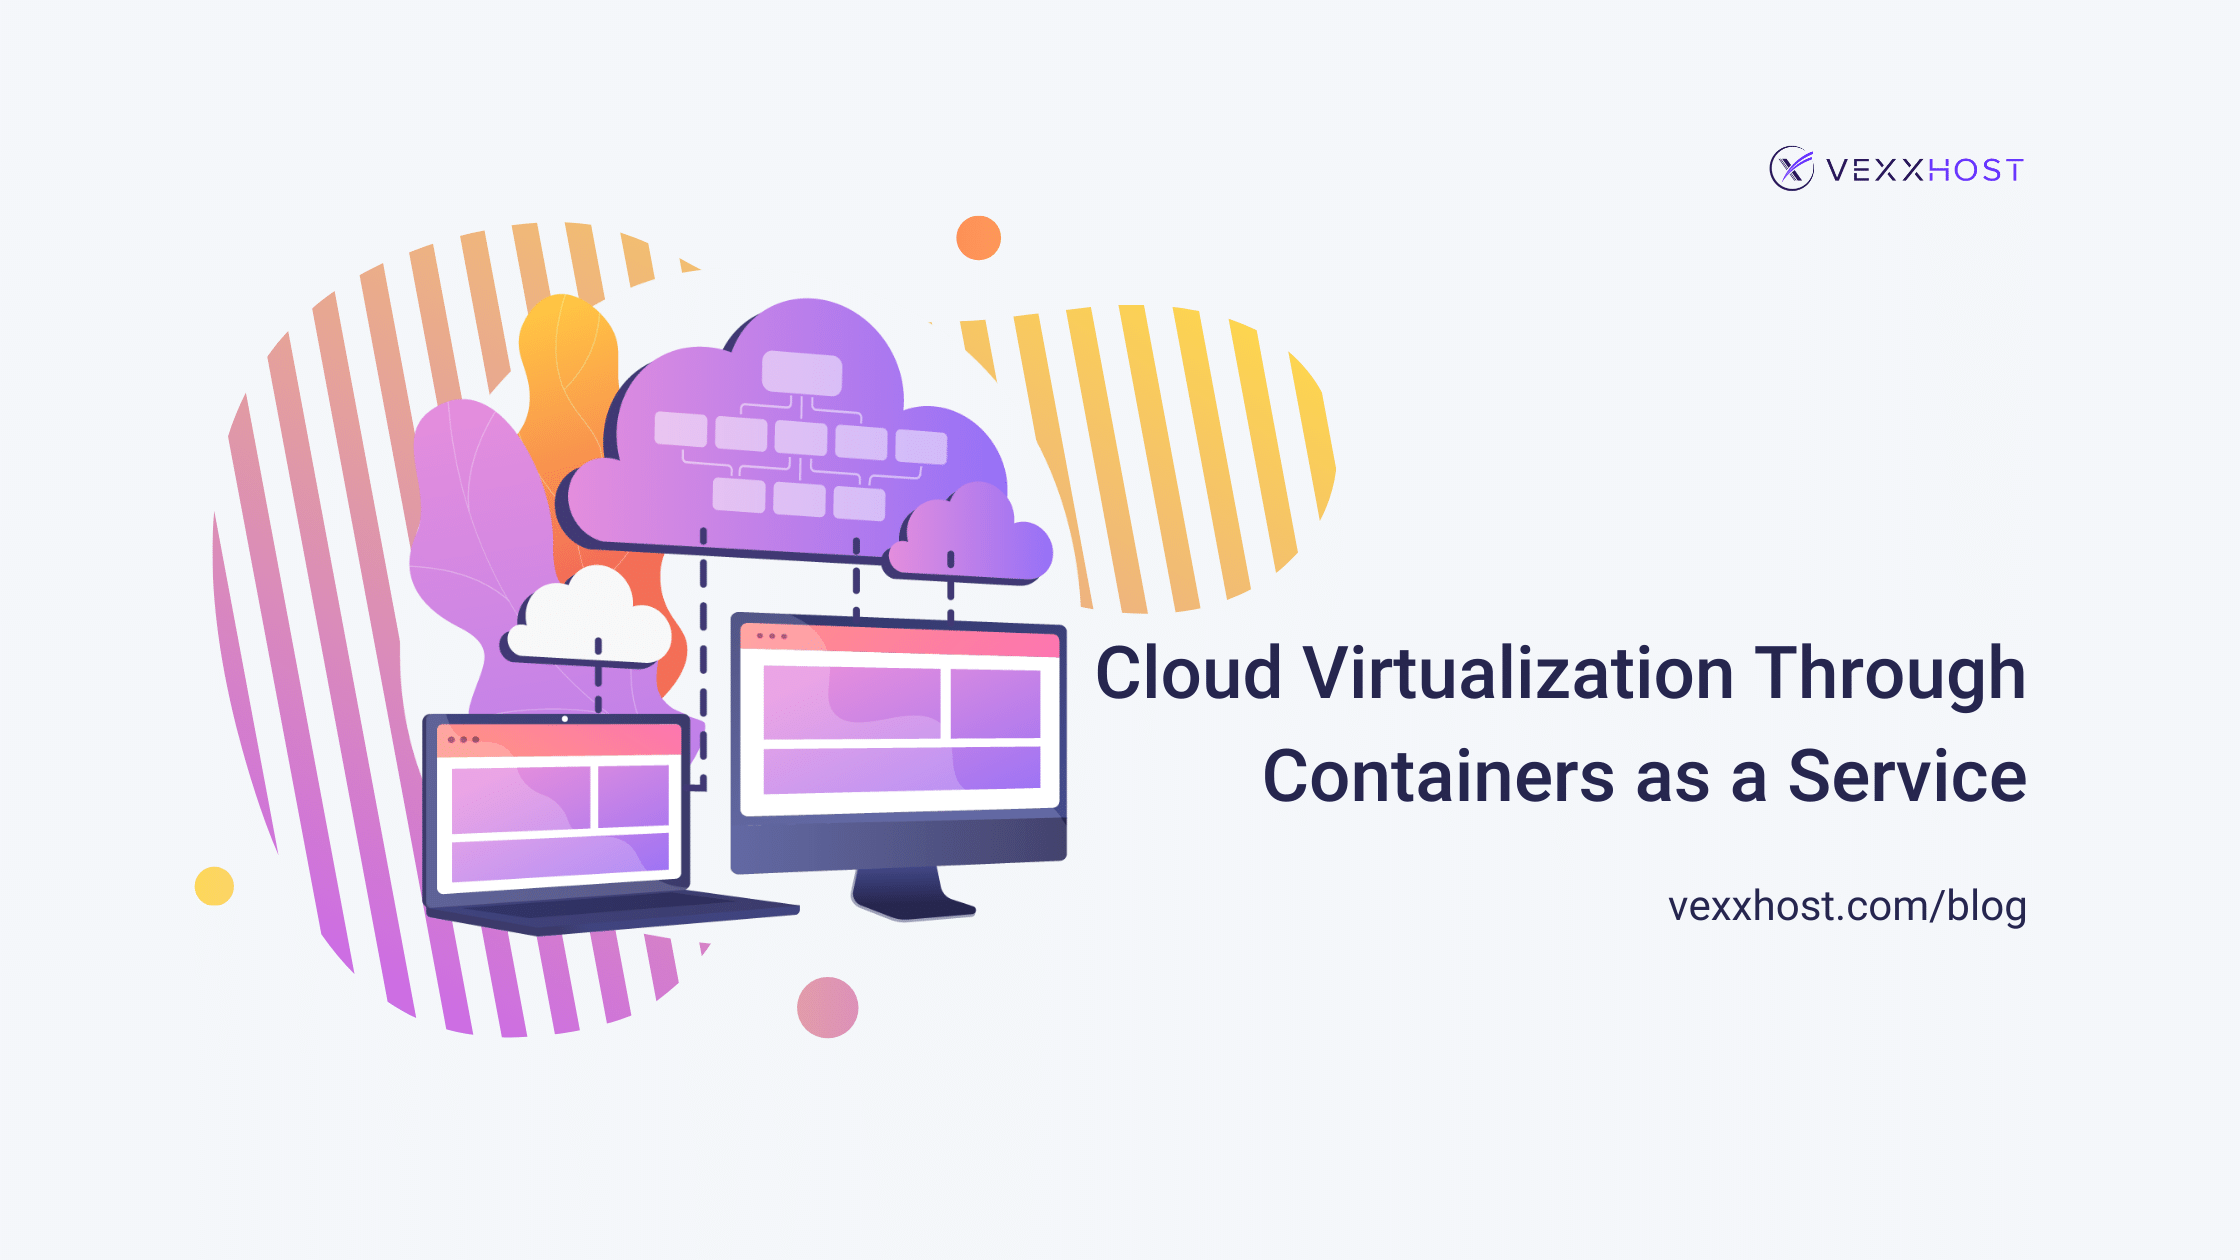 Cloud-Virtualization-through-Containers-as-a-Service-CaaS-blog-header-vexxhost